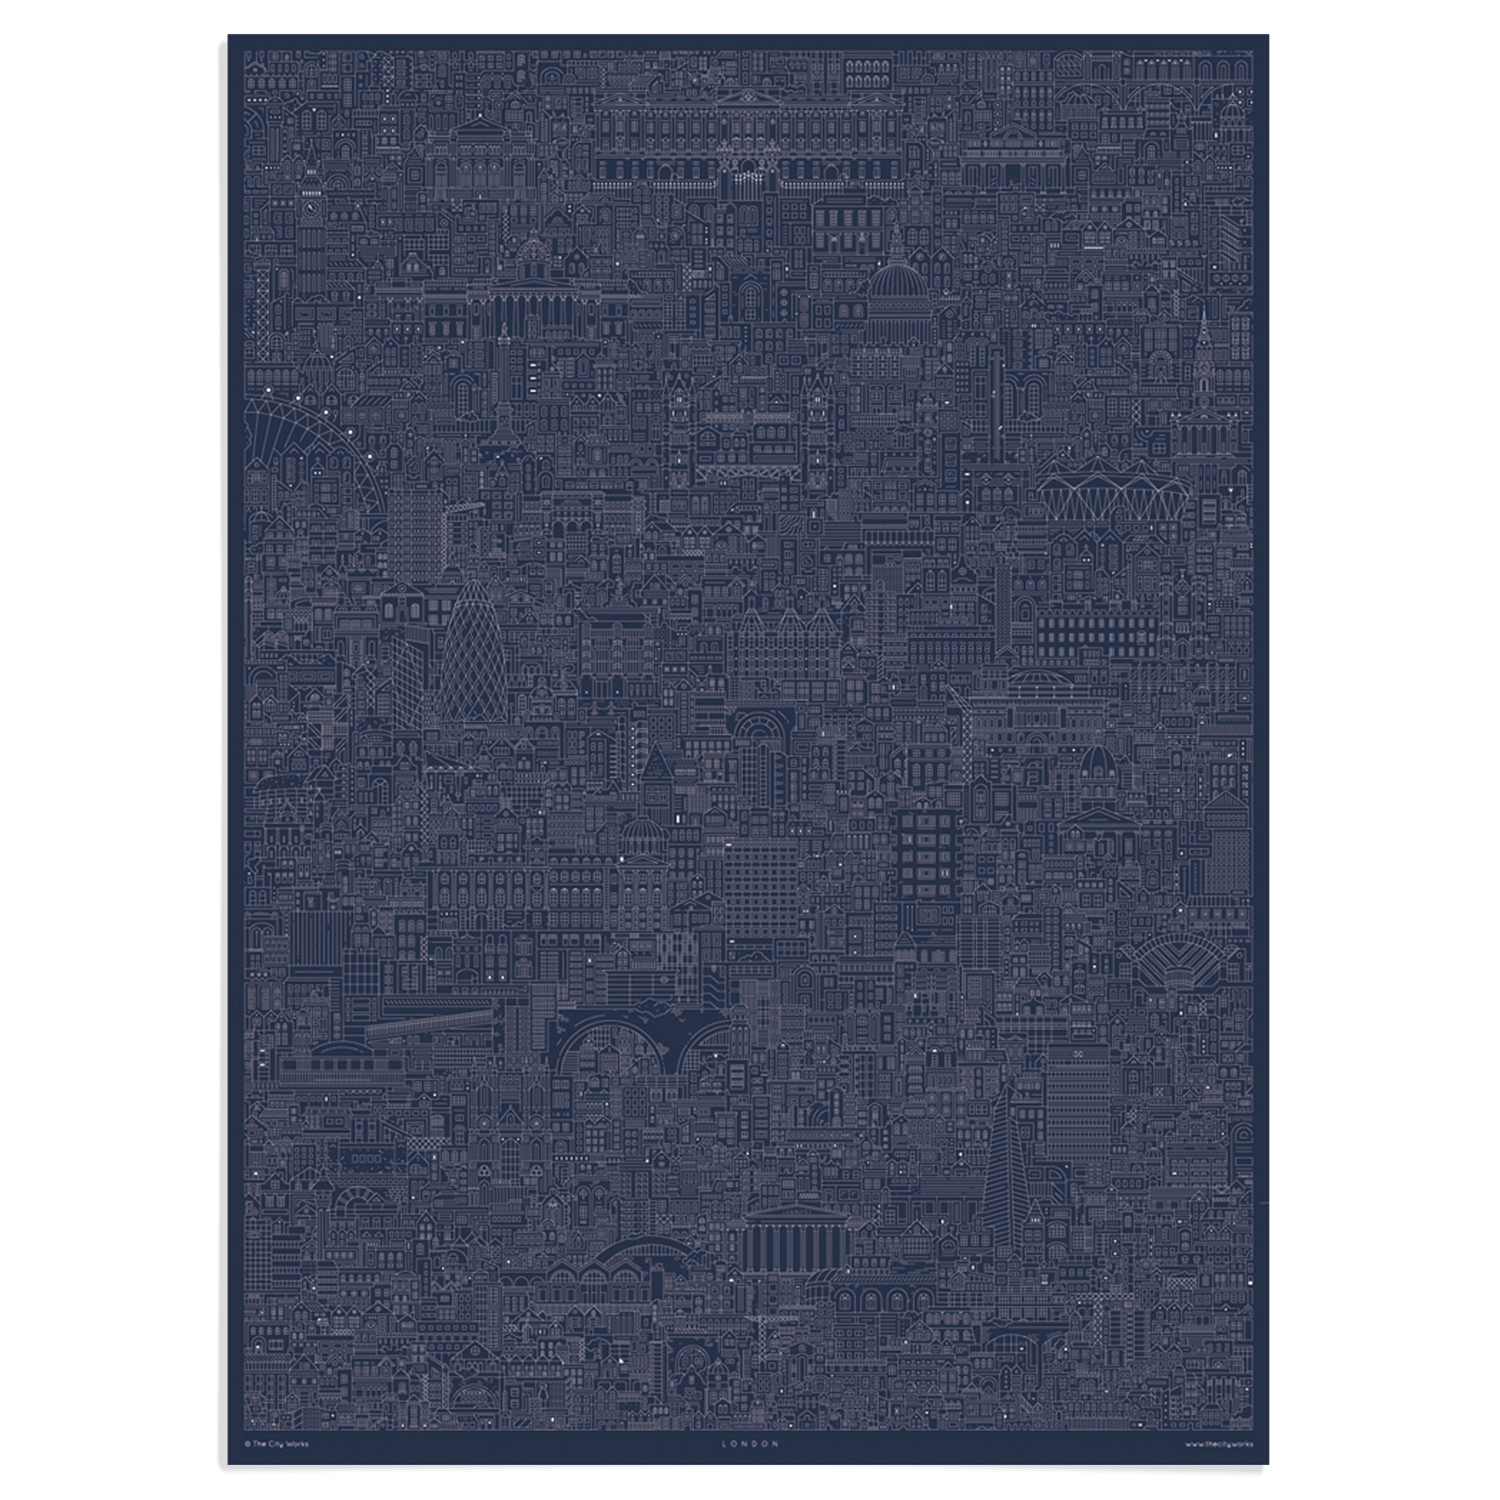 London cityscape blueprint central london art prints place in place in print the city works london cityscape blueprint art print unframed malvernweather Image collections